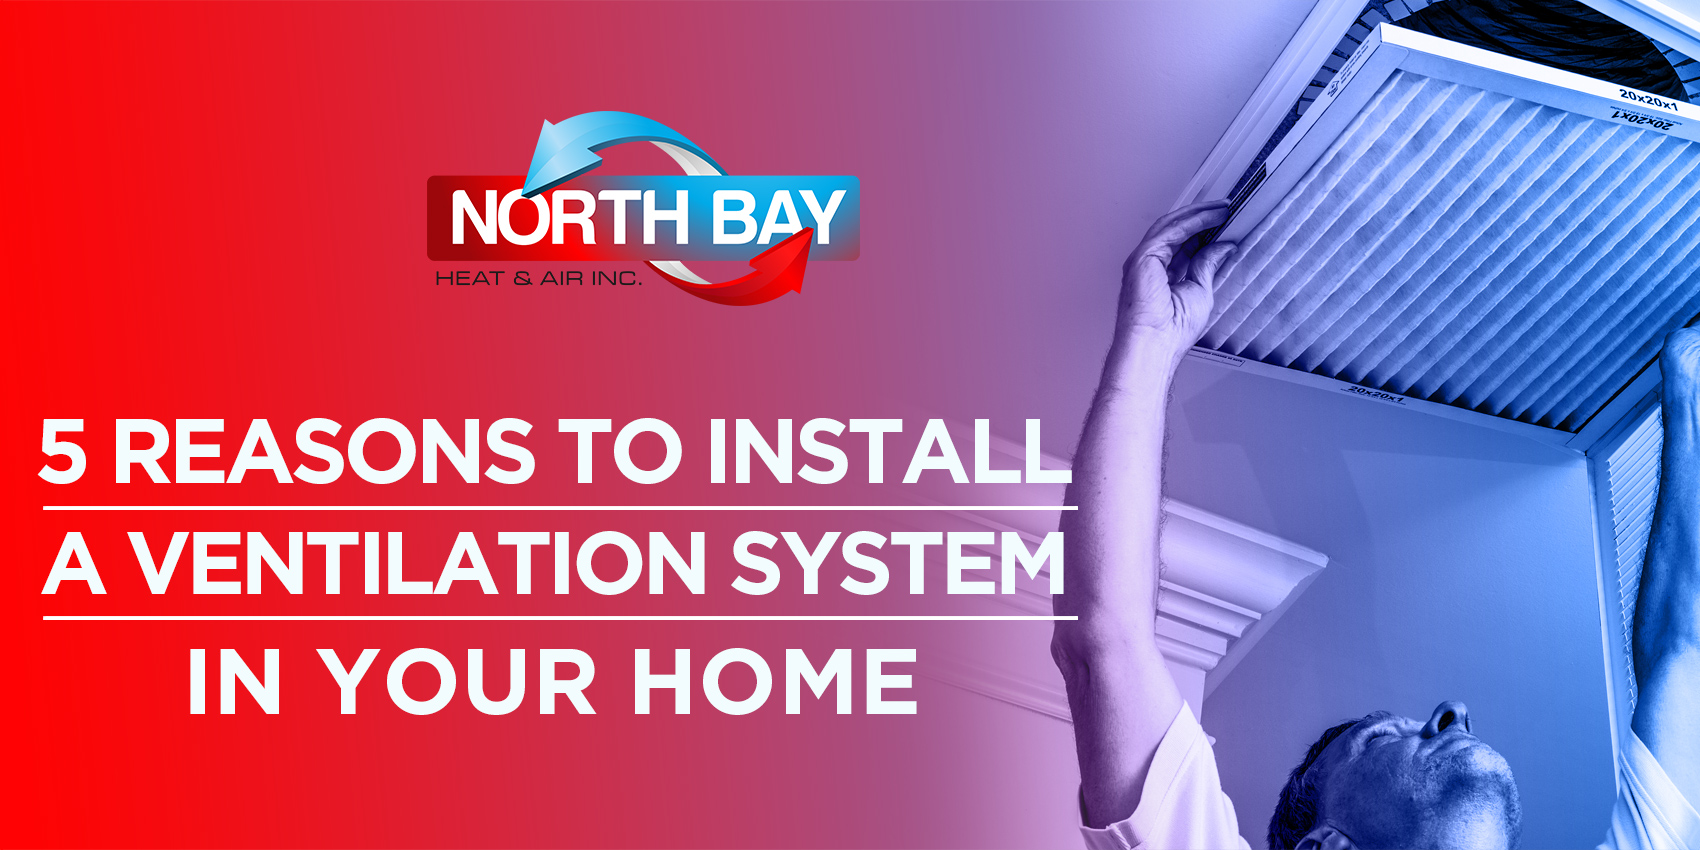 5 Reasons to Install a Ventilation System In Your Home